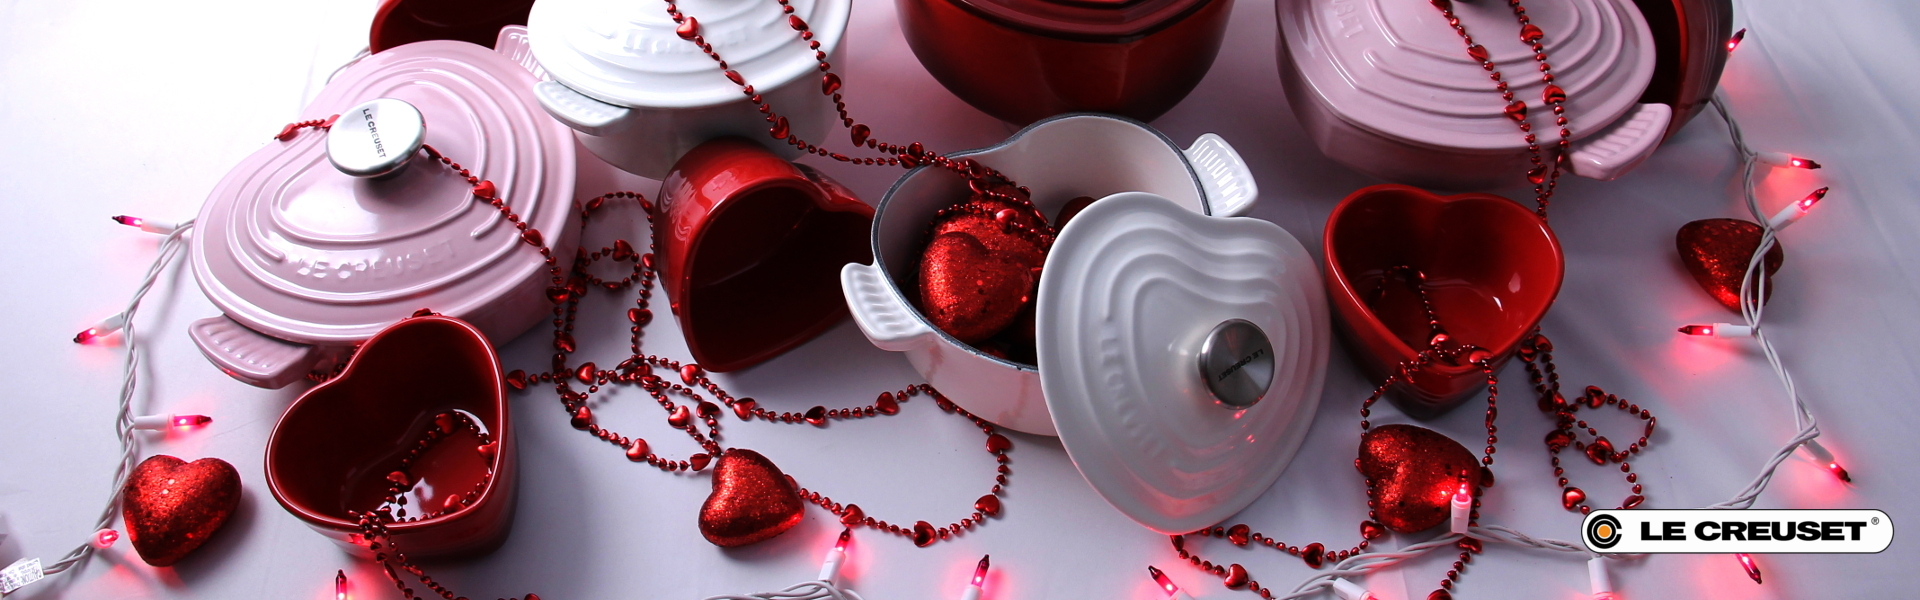 Shop Le Creuset's Valentine's Day Products and Heart Collection